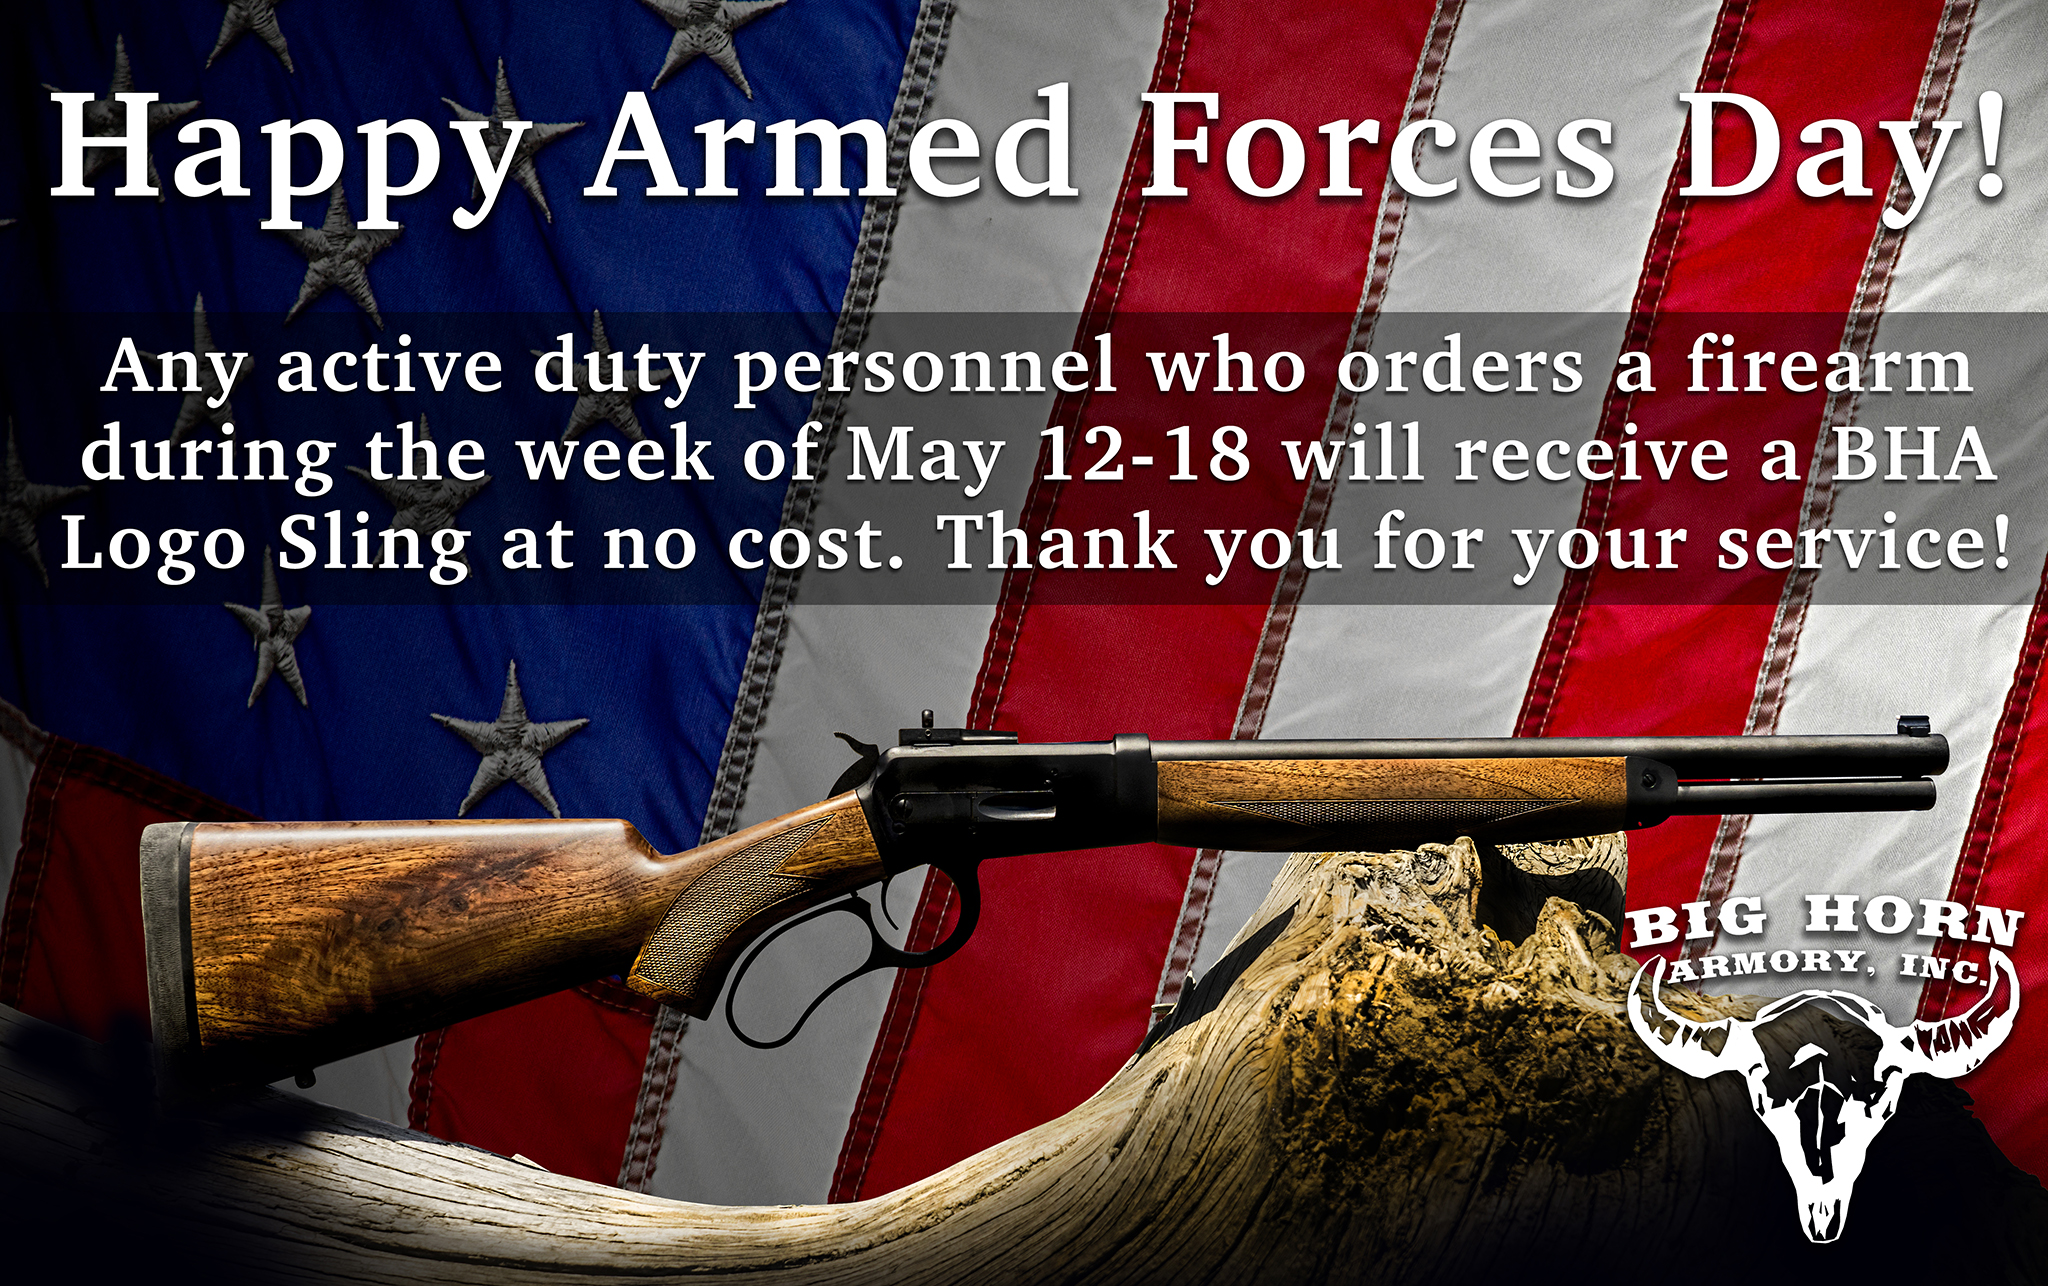 Big Horn Armory Honors Active Duty Military Members with Special Offer in Honor of Armed Forces Day